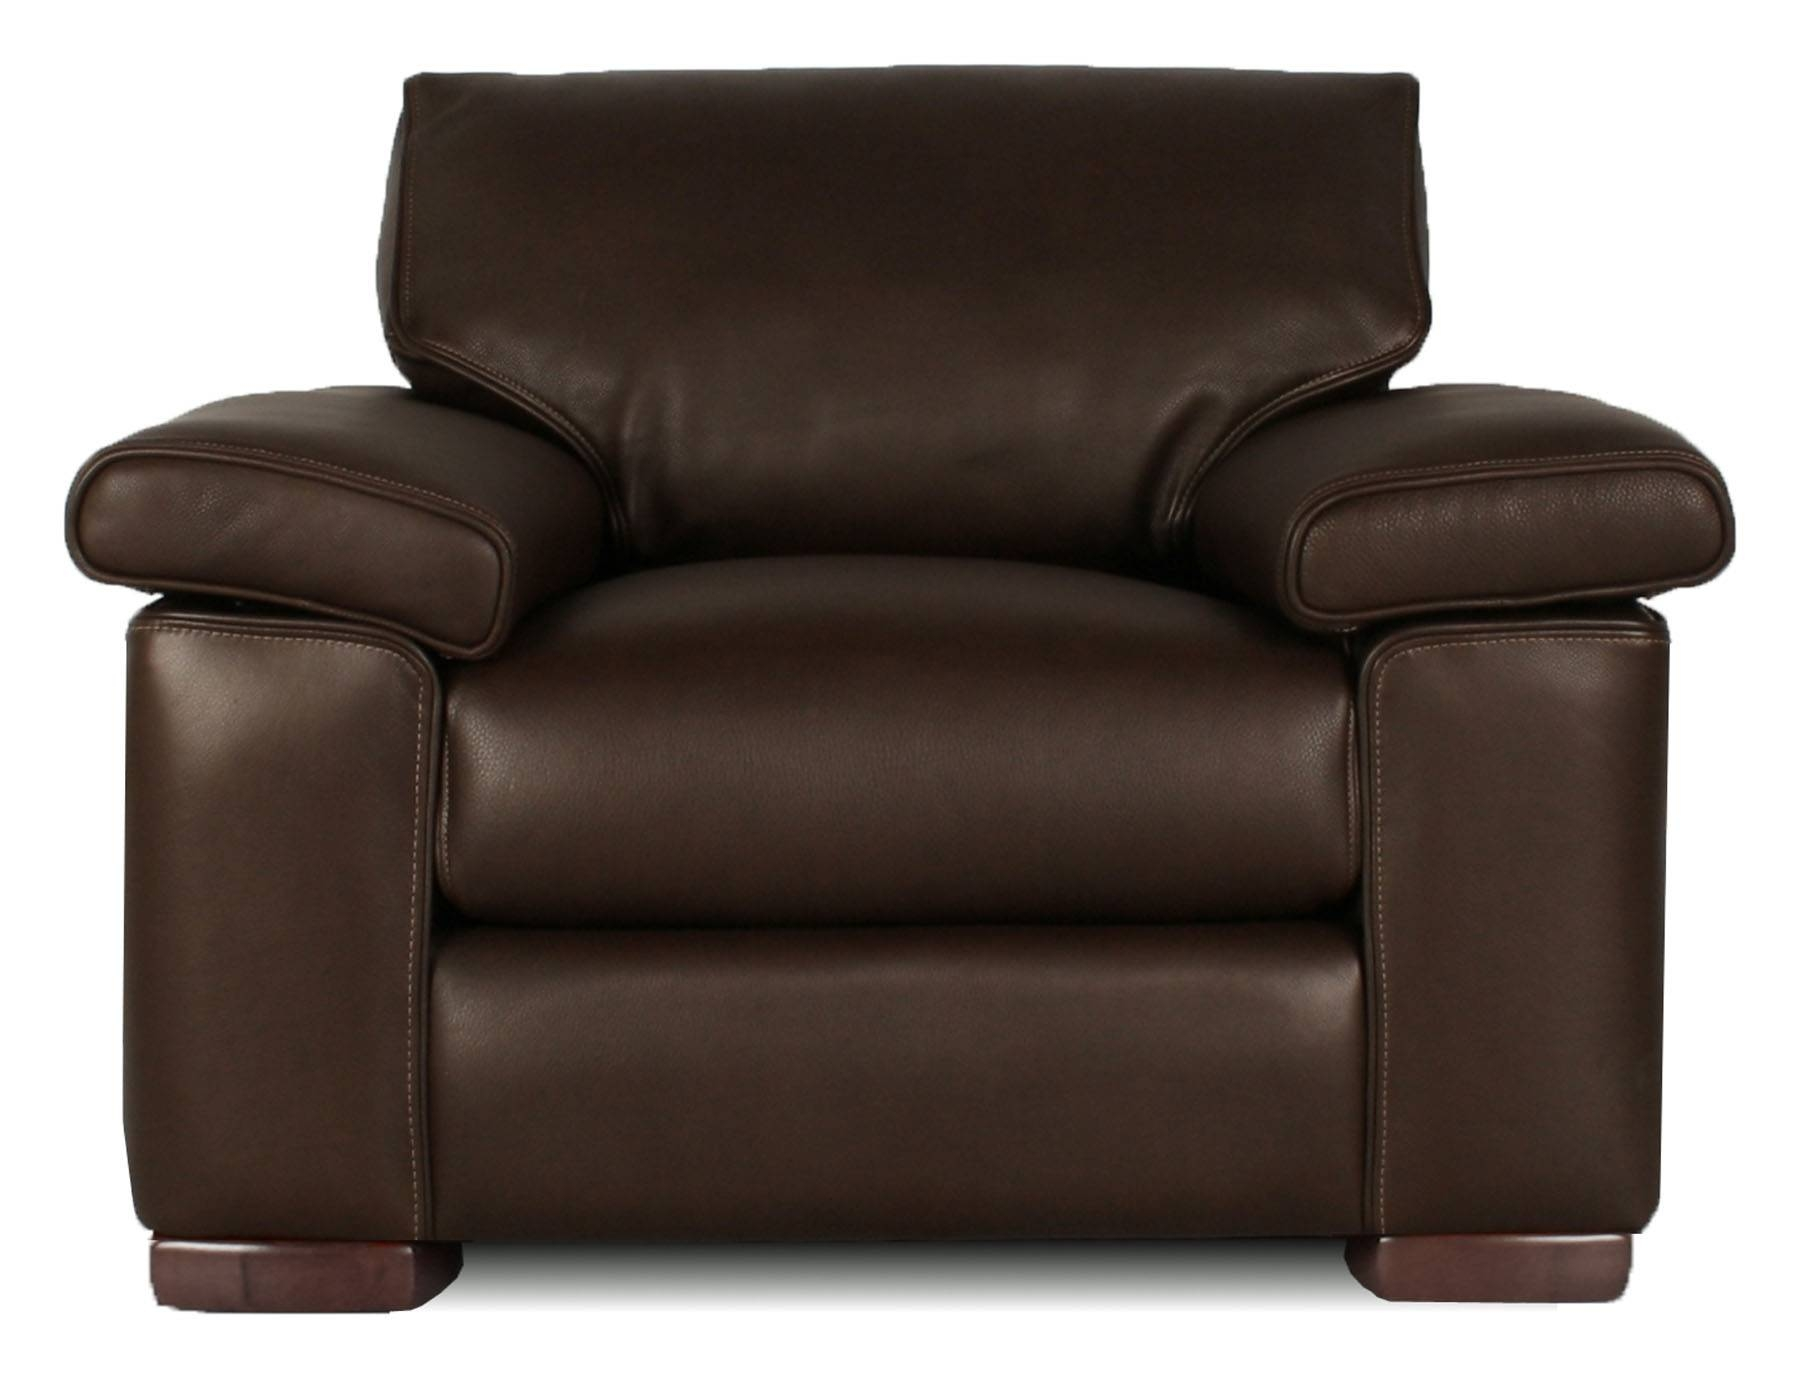 Leather Creations - Leather Furniture - Sofas, Love Seats And Chairs. within Leather Sofas (Image 13 of 30)